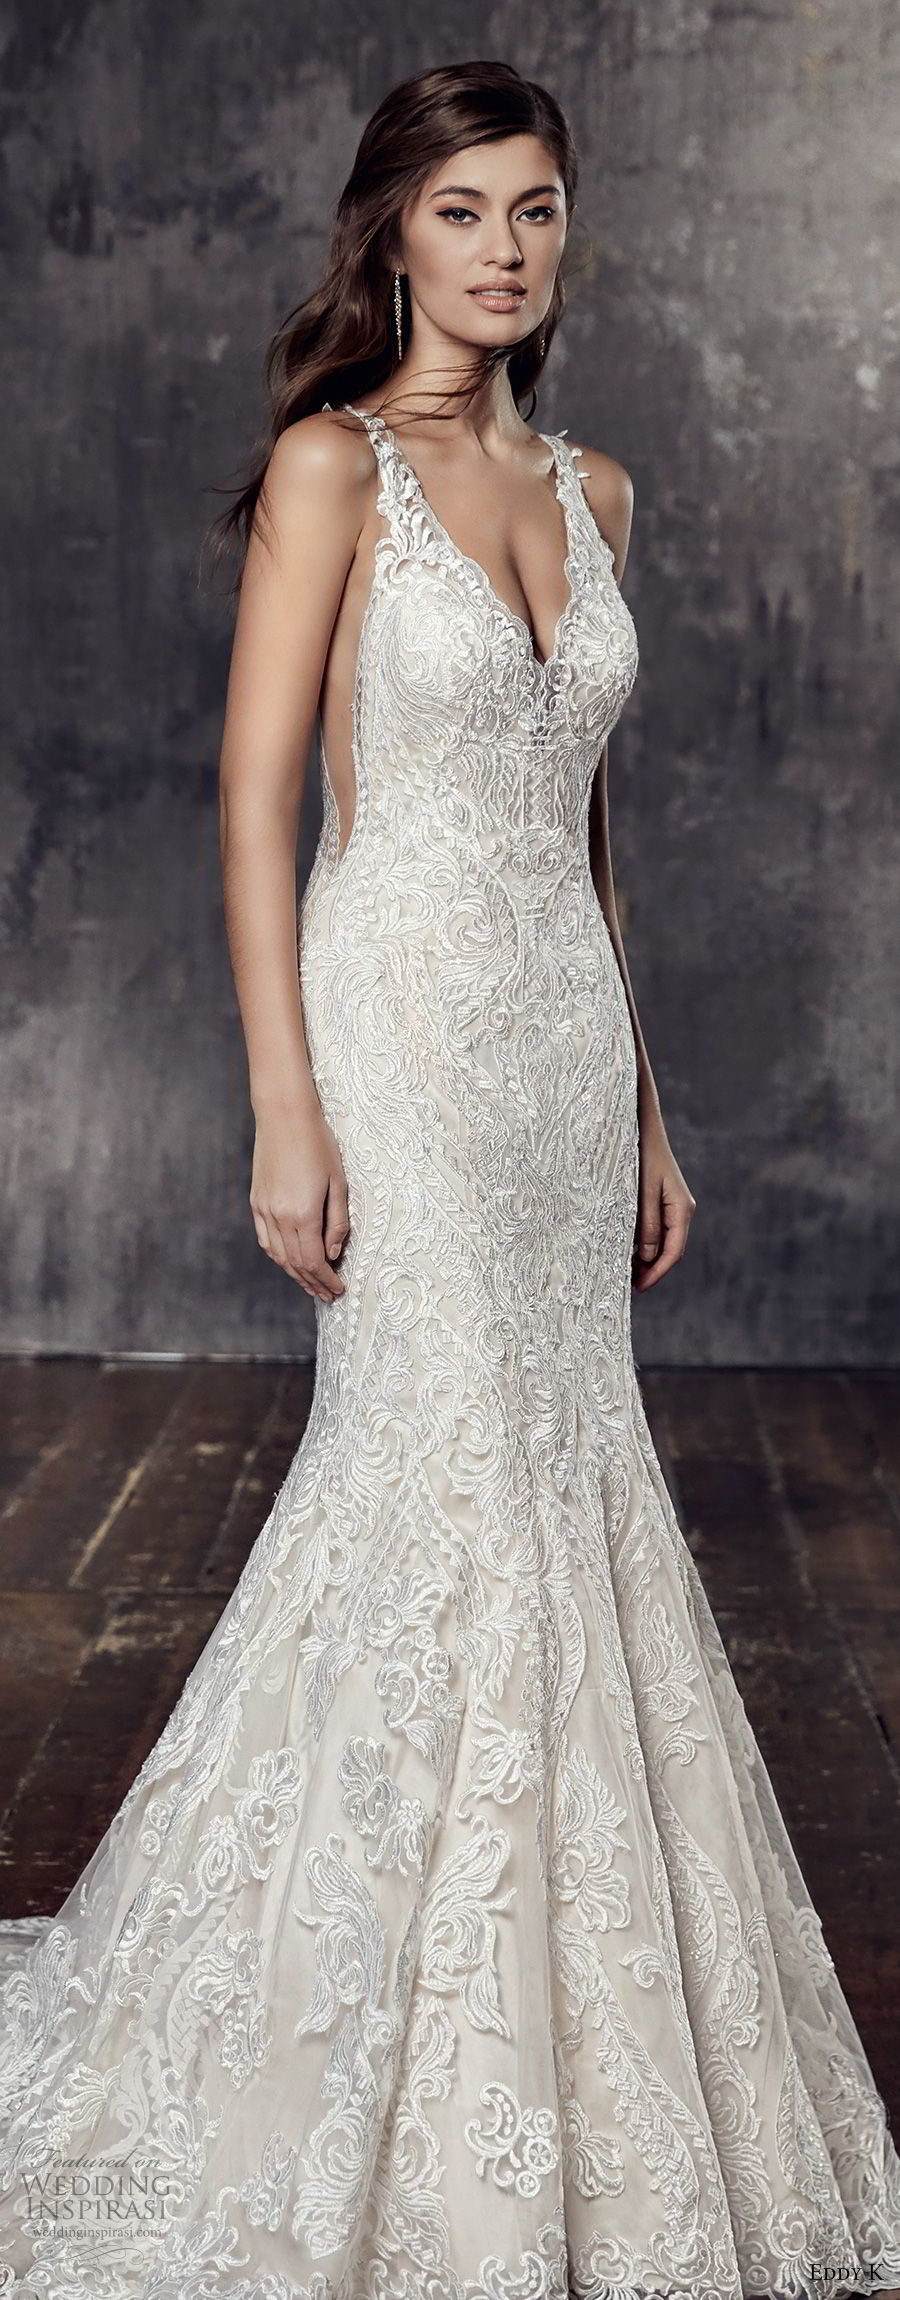 Elegant Lace Wedding Dresses 2018 - Discount Wedding Dresses